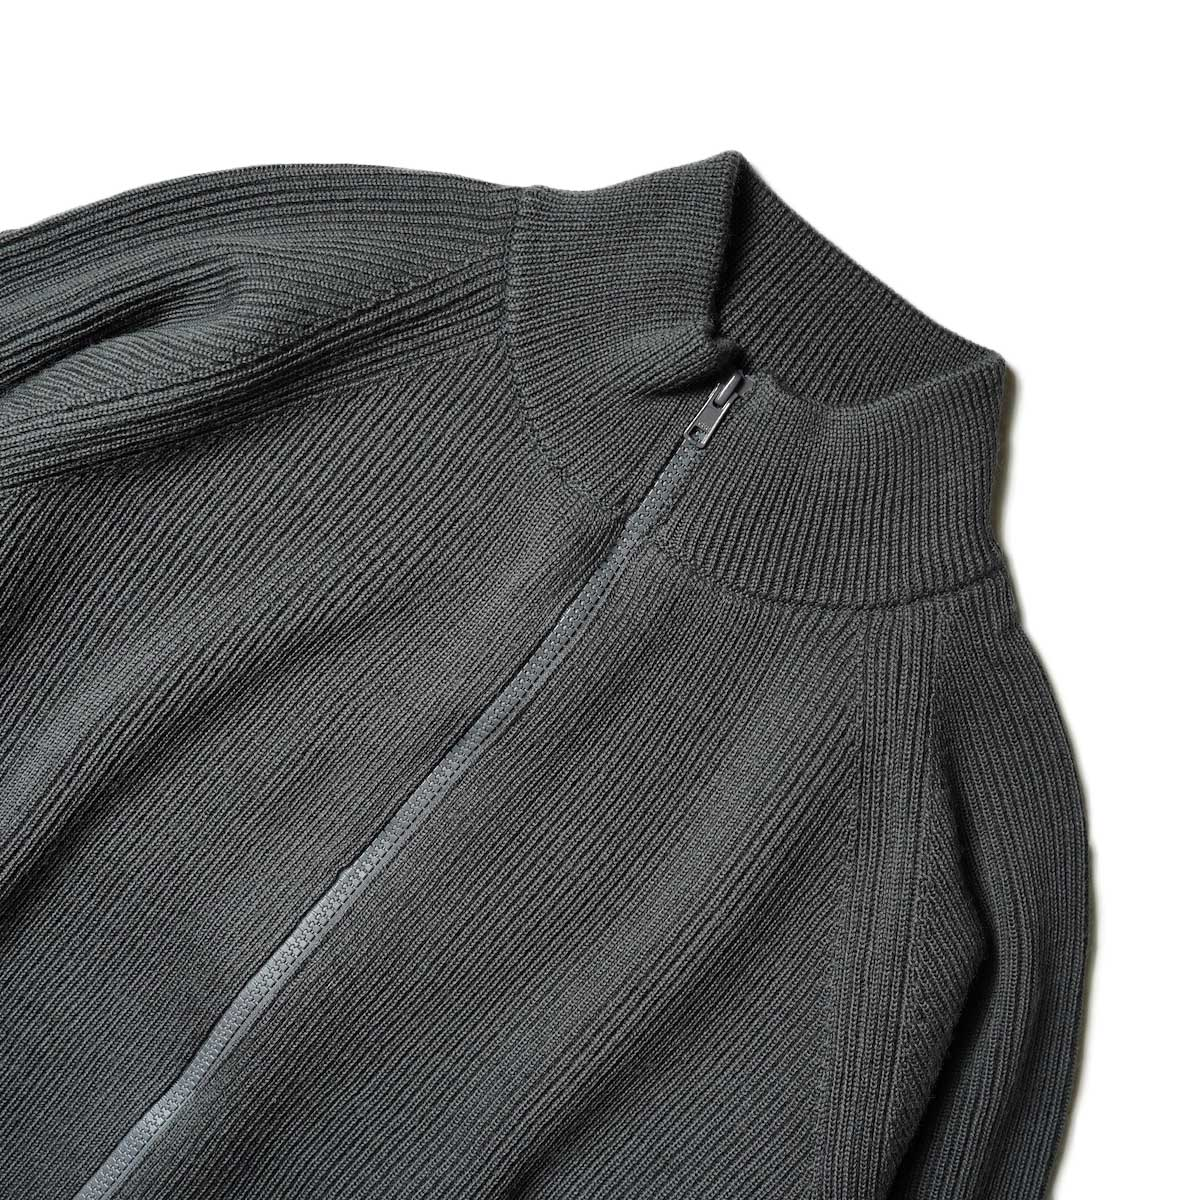 EVCON / DRIVERS SWEATER (Charcoal)ネック